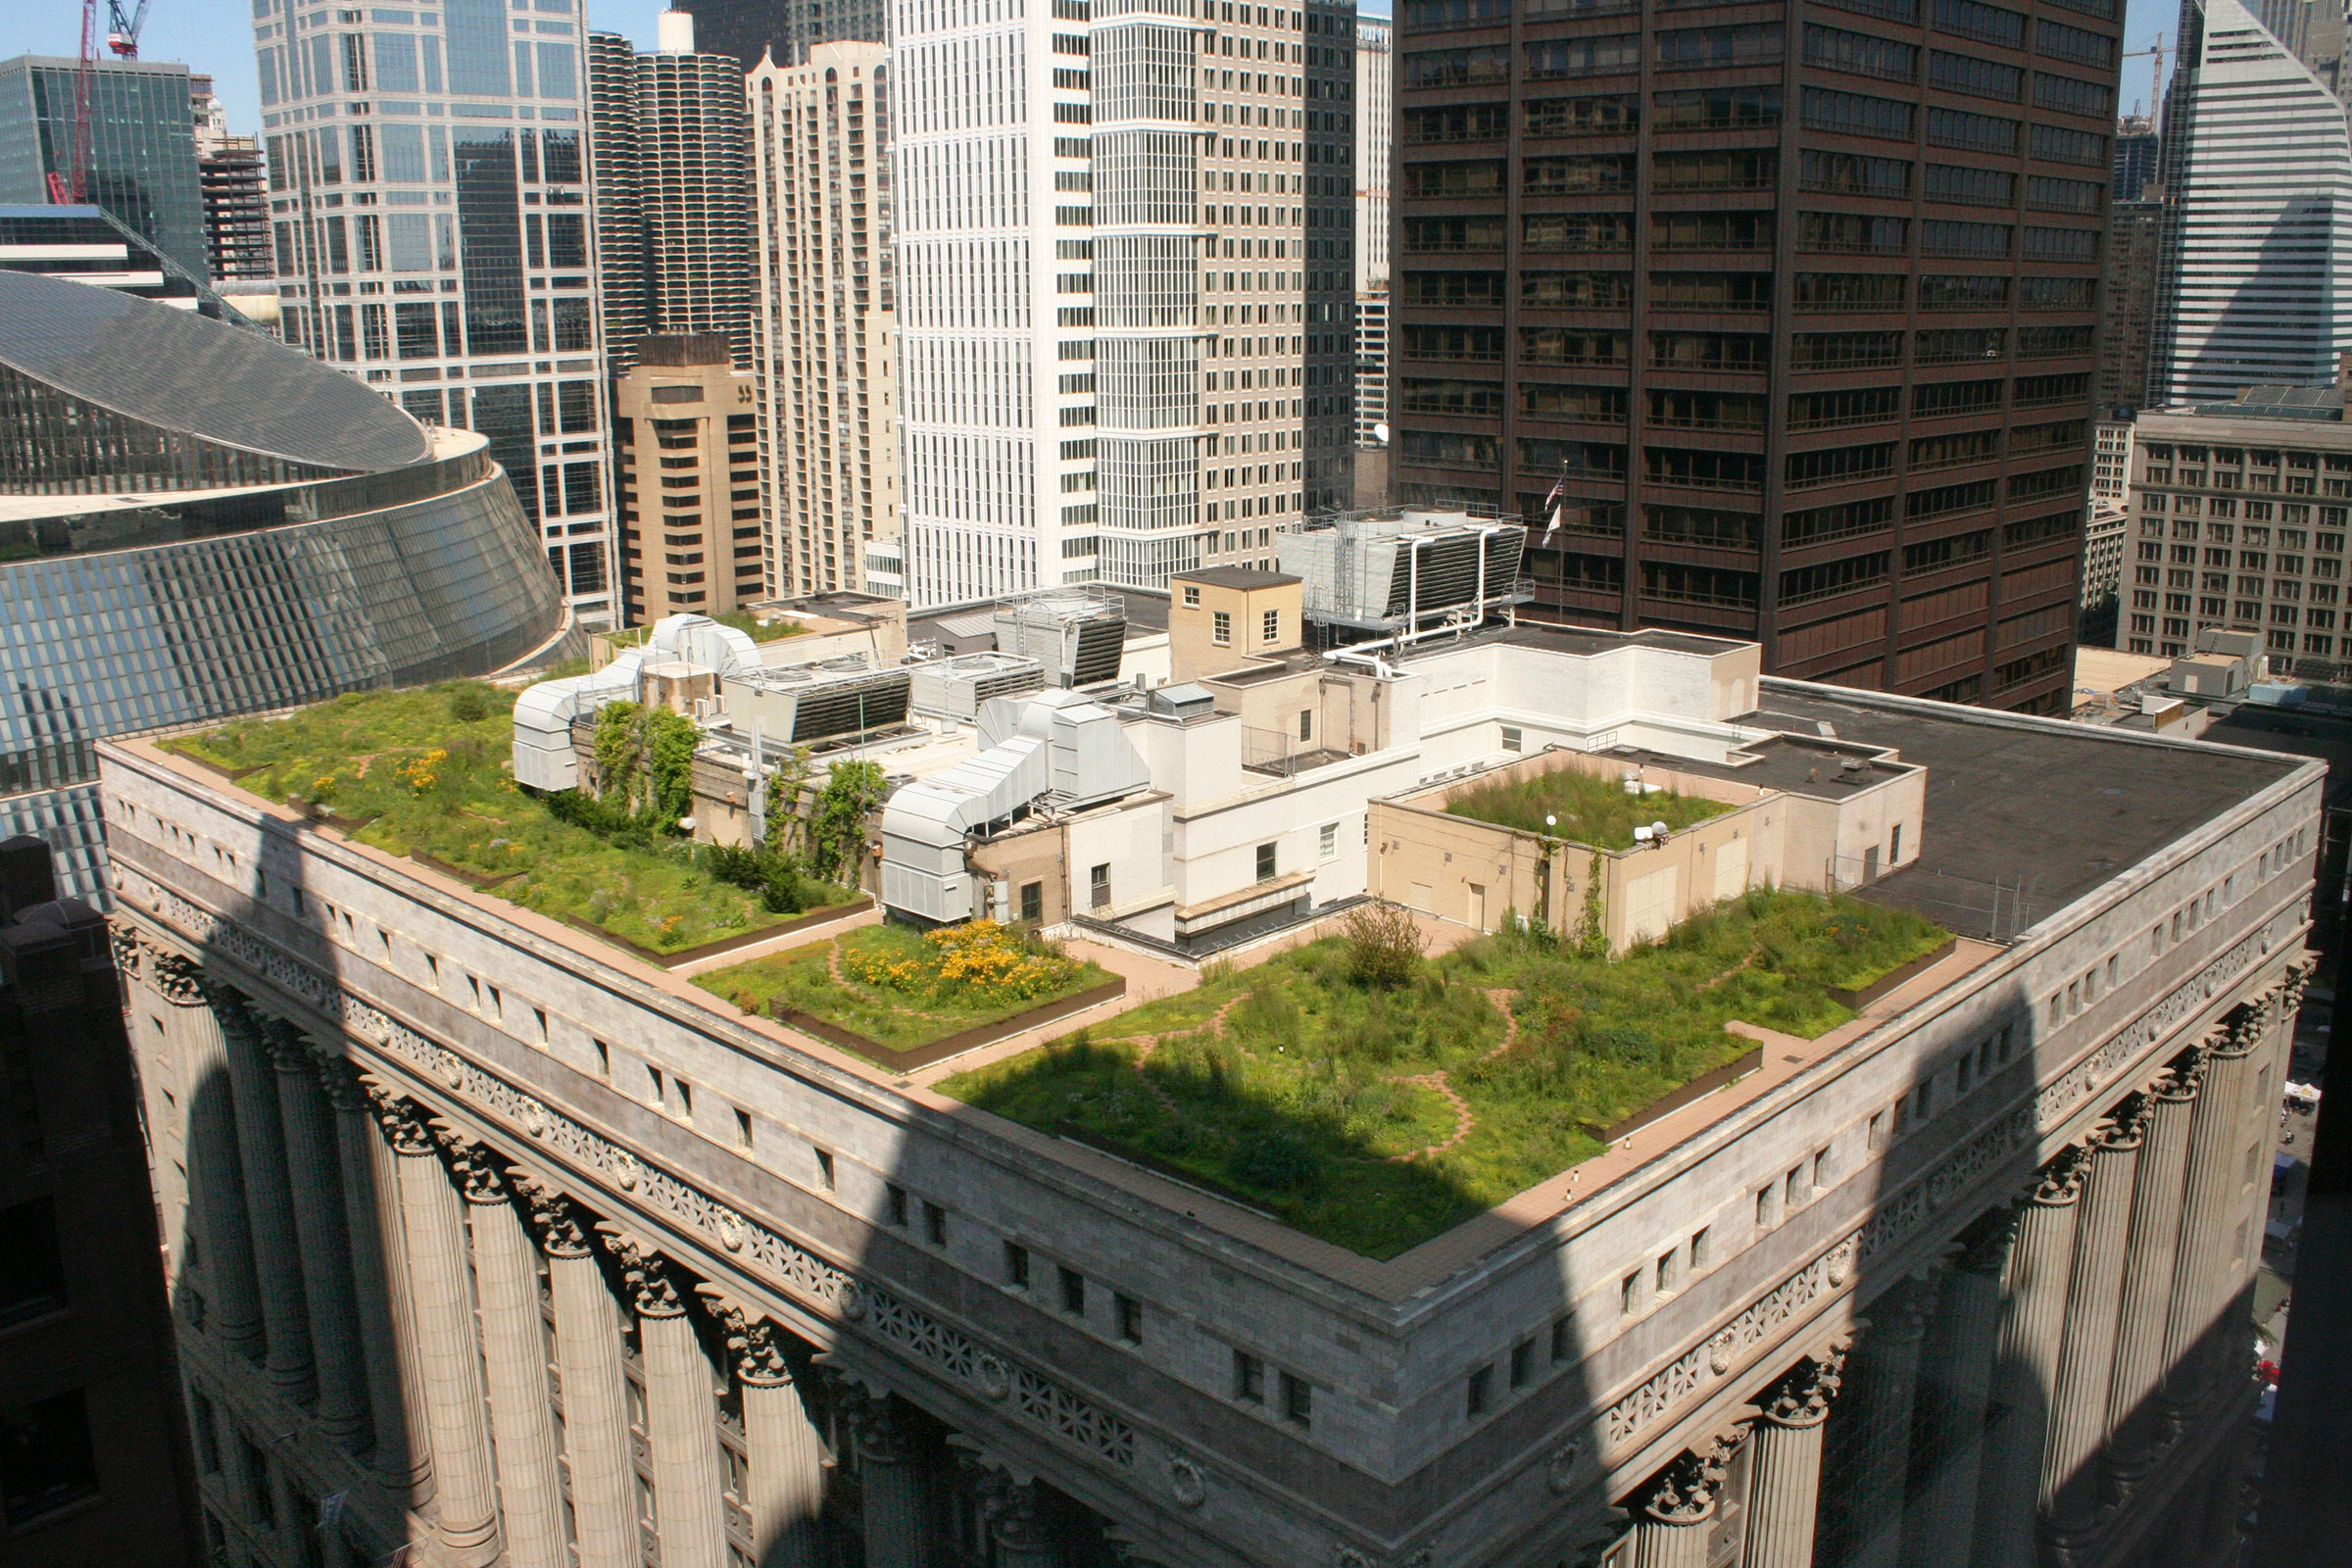 Chicago City Hall Green Roof. Conservation Design Forum